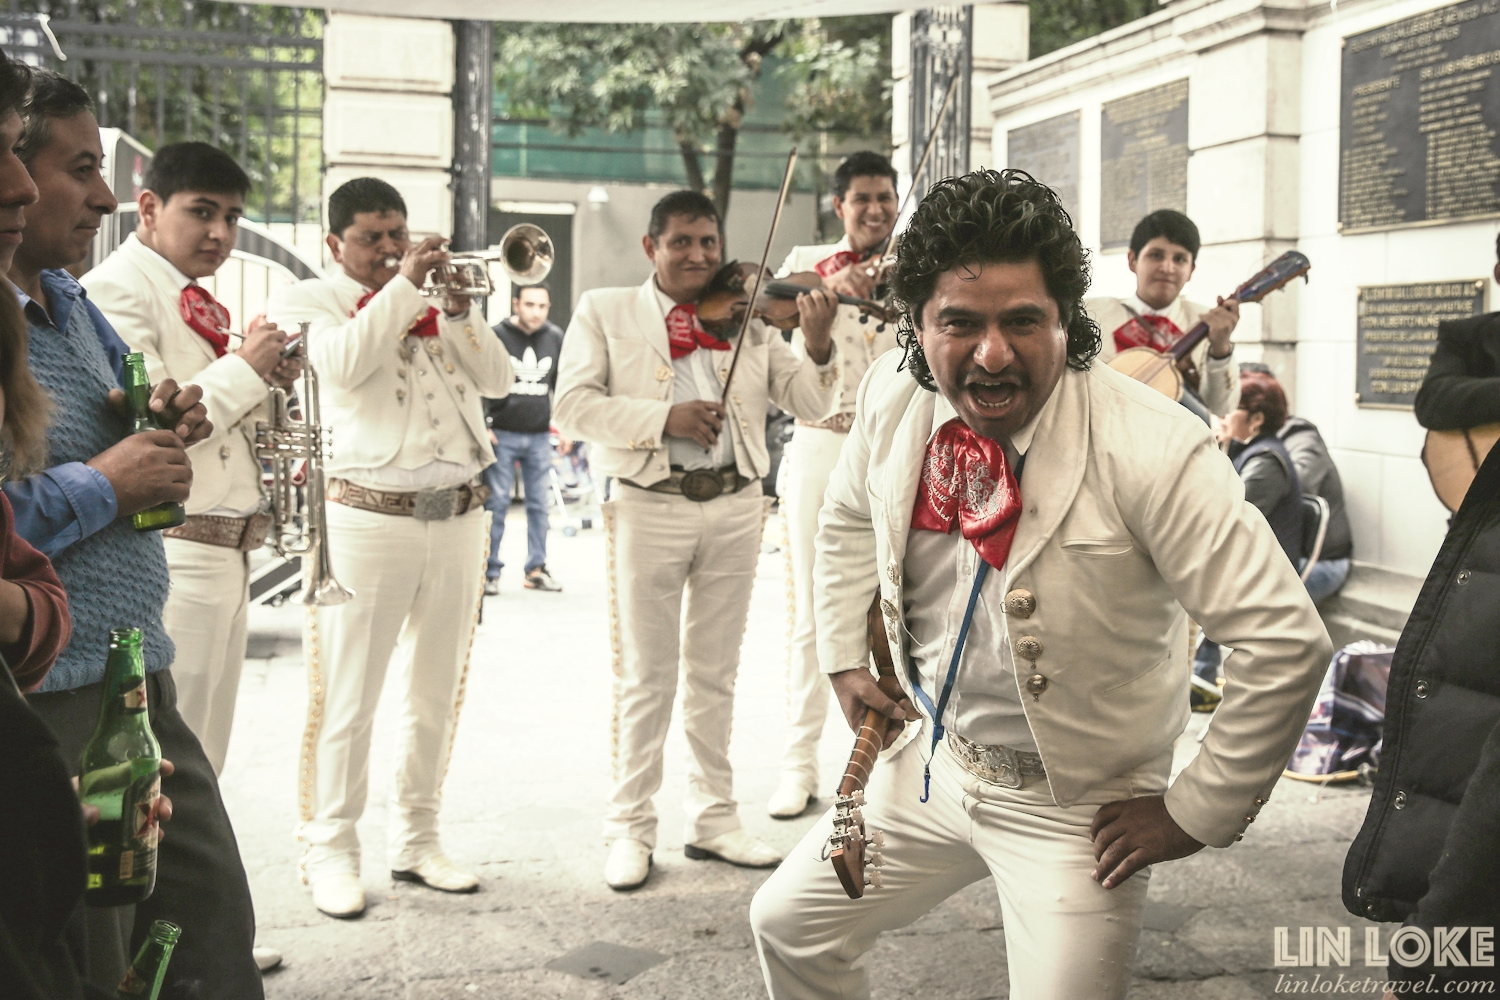 A Mariachi band playing at a pop-up vintage fair